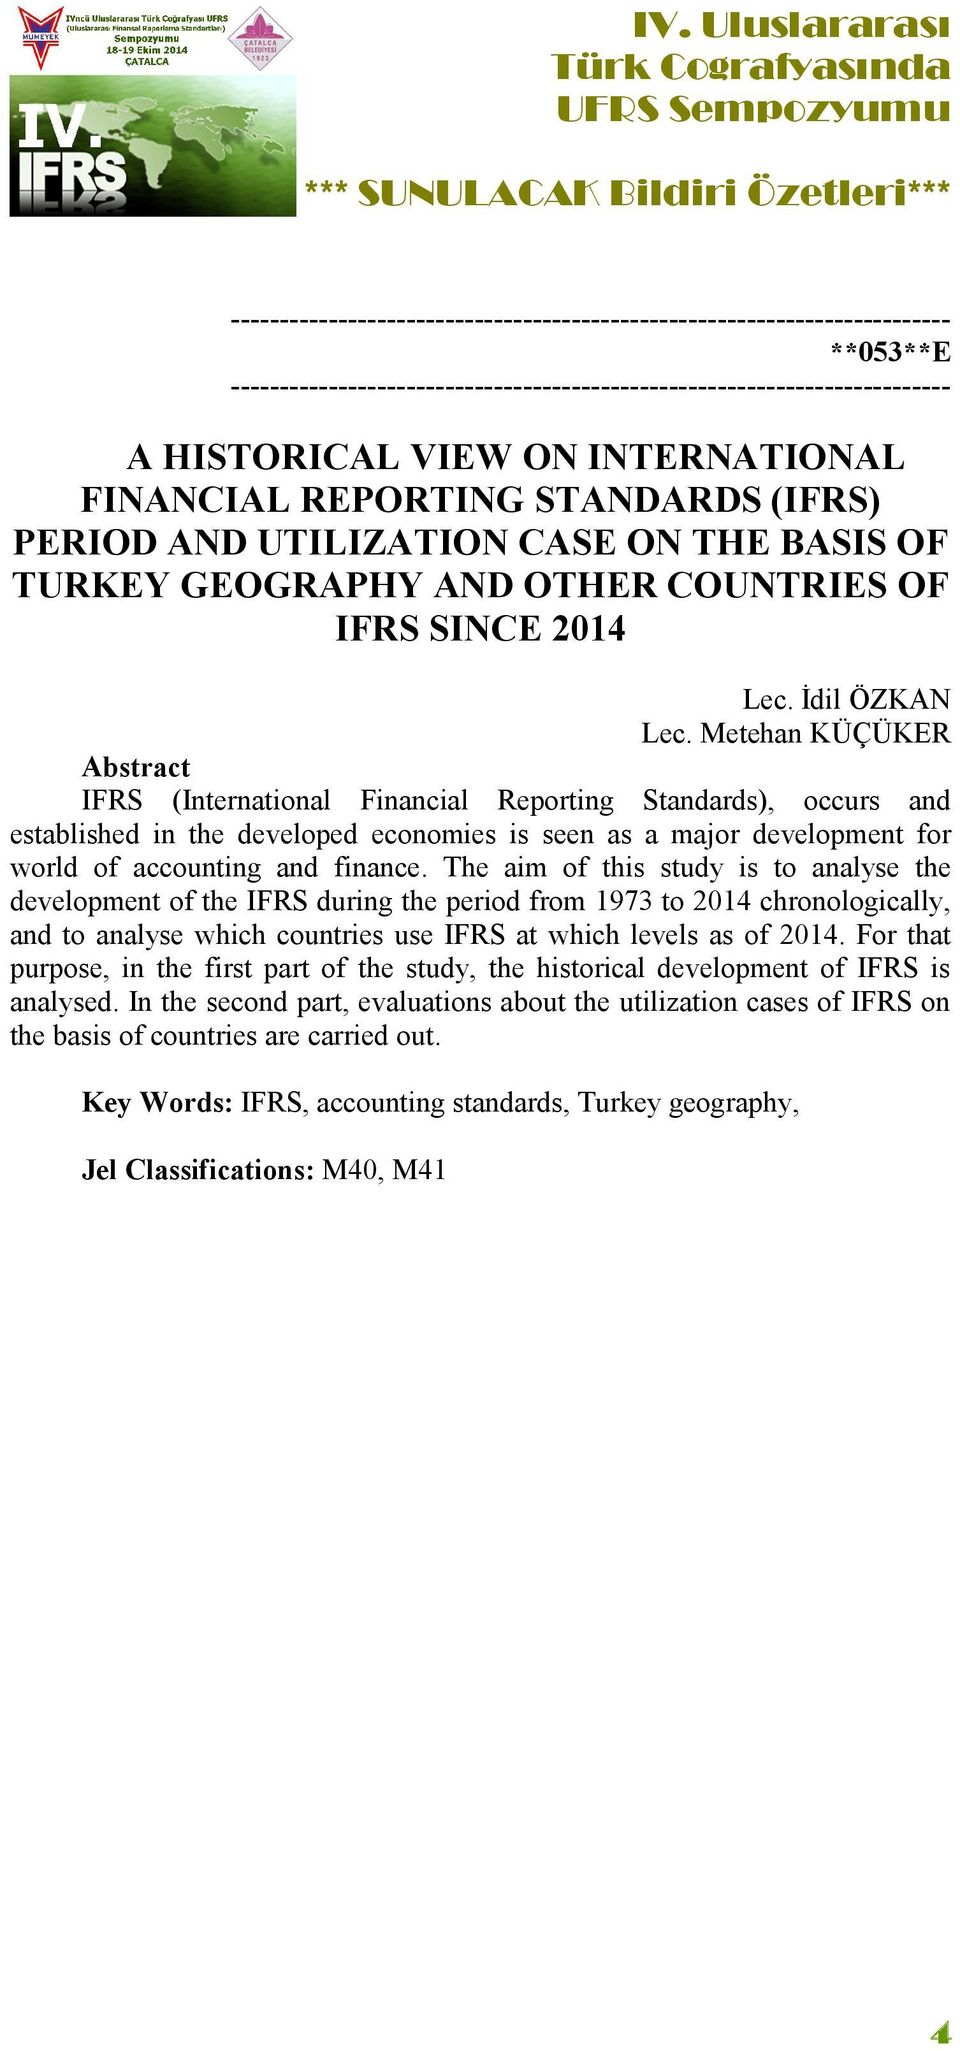 Metehan KÜÇÜKER Abstract IFRS (International Financial Reporting Standards), occurs and established in the developed economies is seen as a major development for world of accounting and finance.